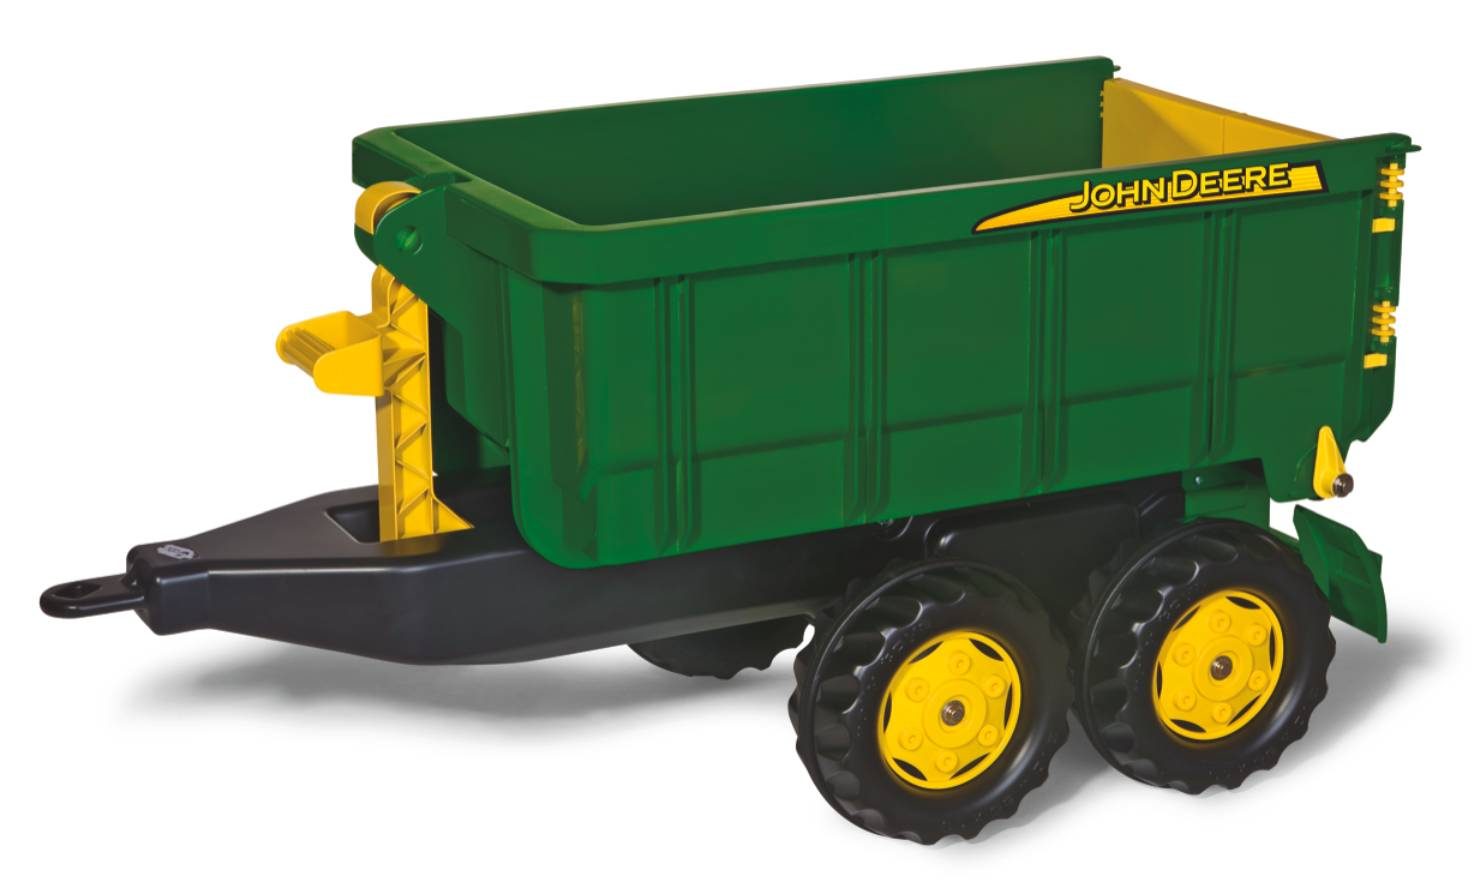 Rolly Toys RollyContainer John Deere